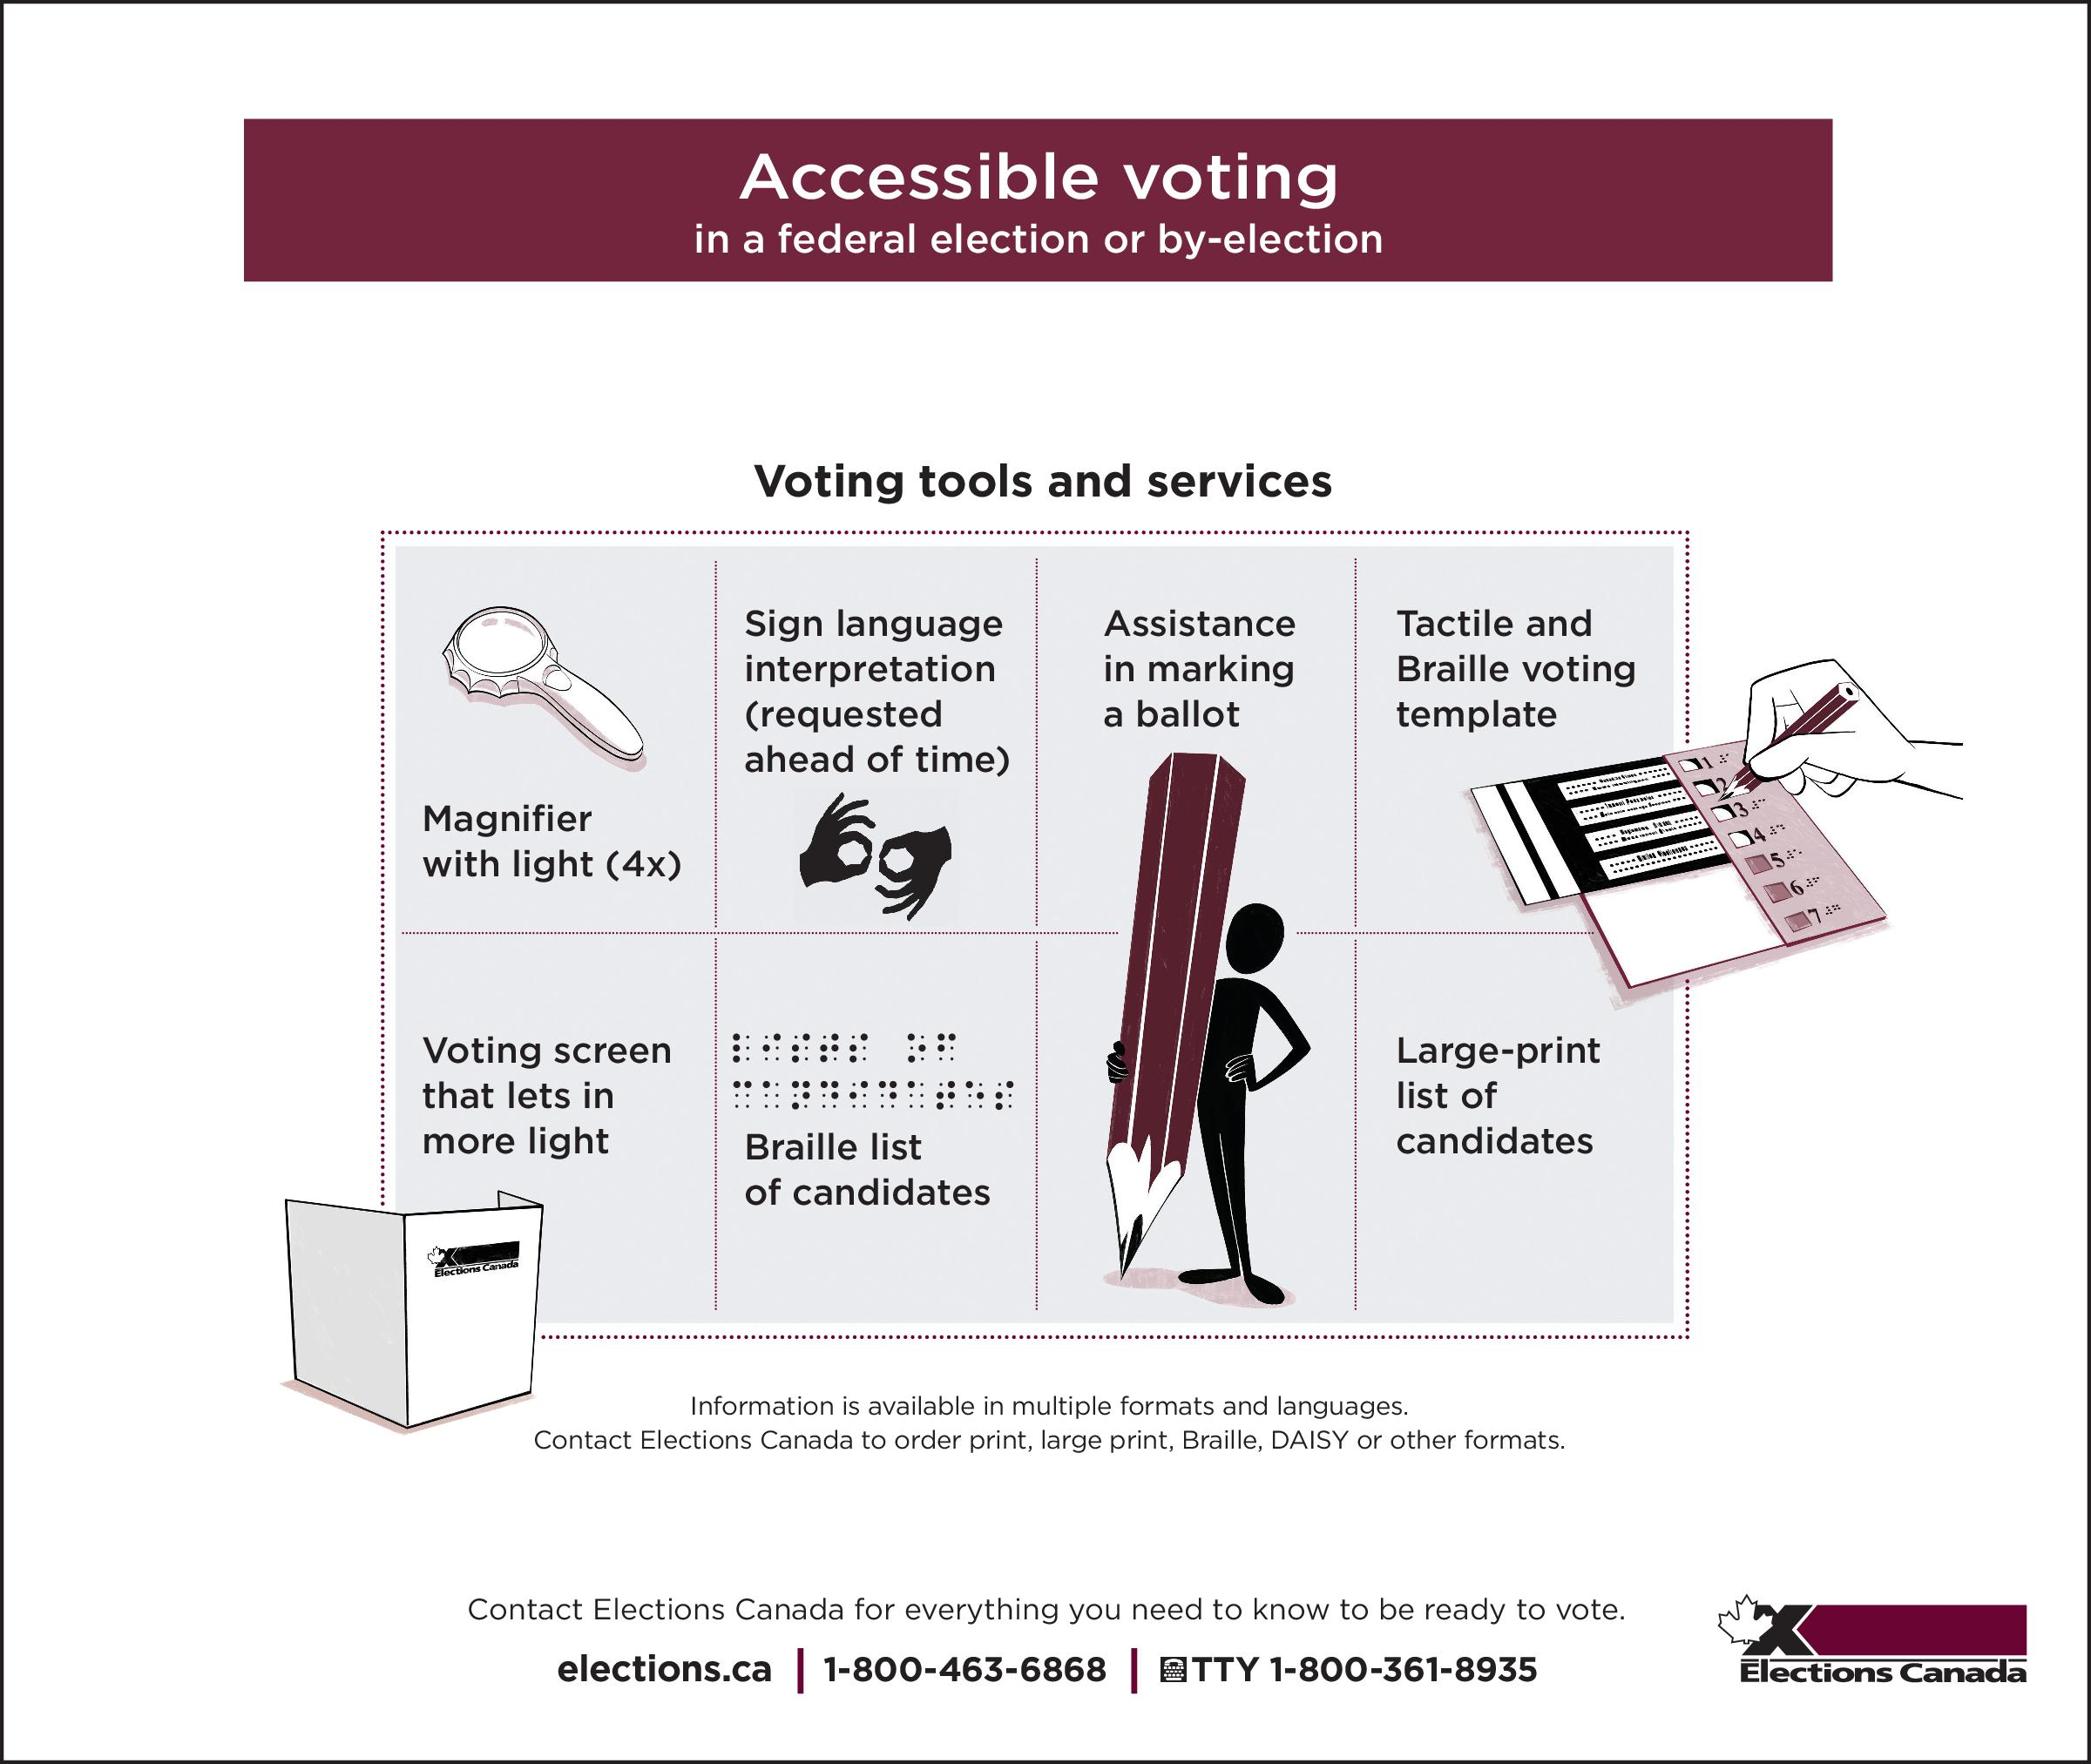 Elections Canada Accessibility poster